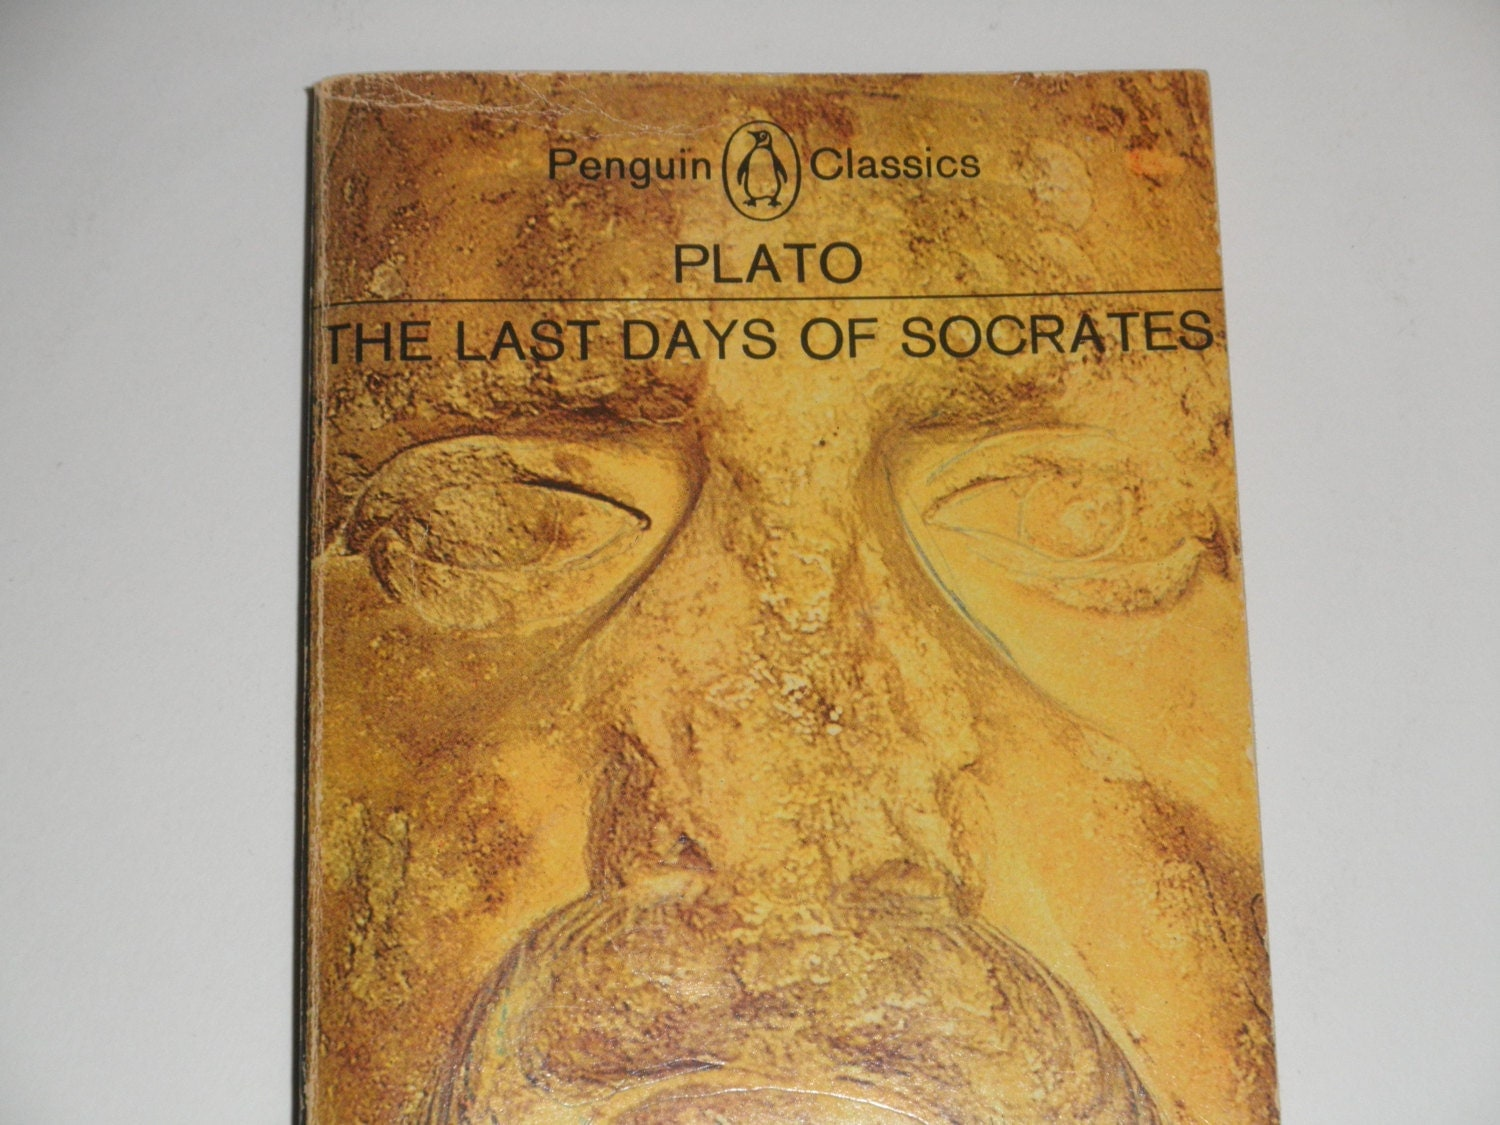 a comparison between the philosophies of socrates and euthyphro Dialogue between plato and it takes a prominent position in the conversation between socrates and euthyphro difference between the two is the status or.